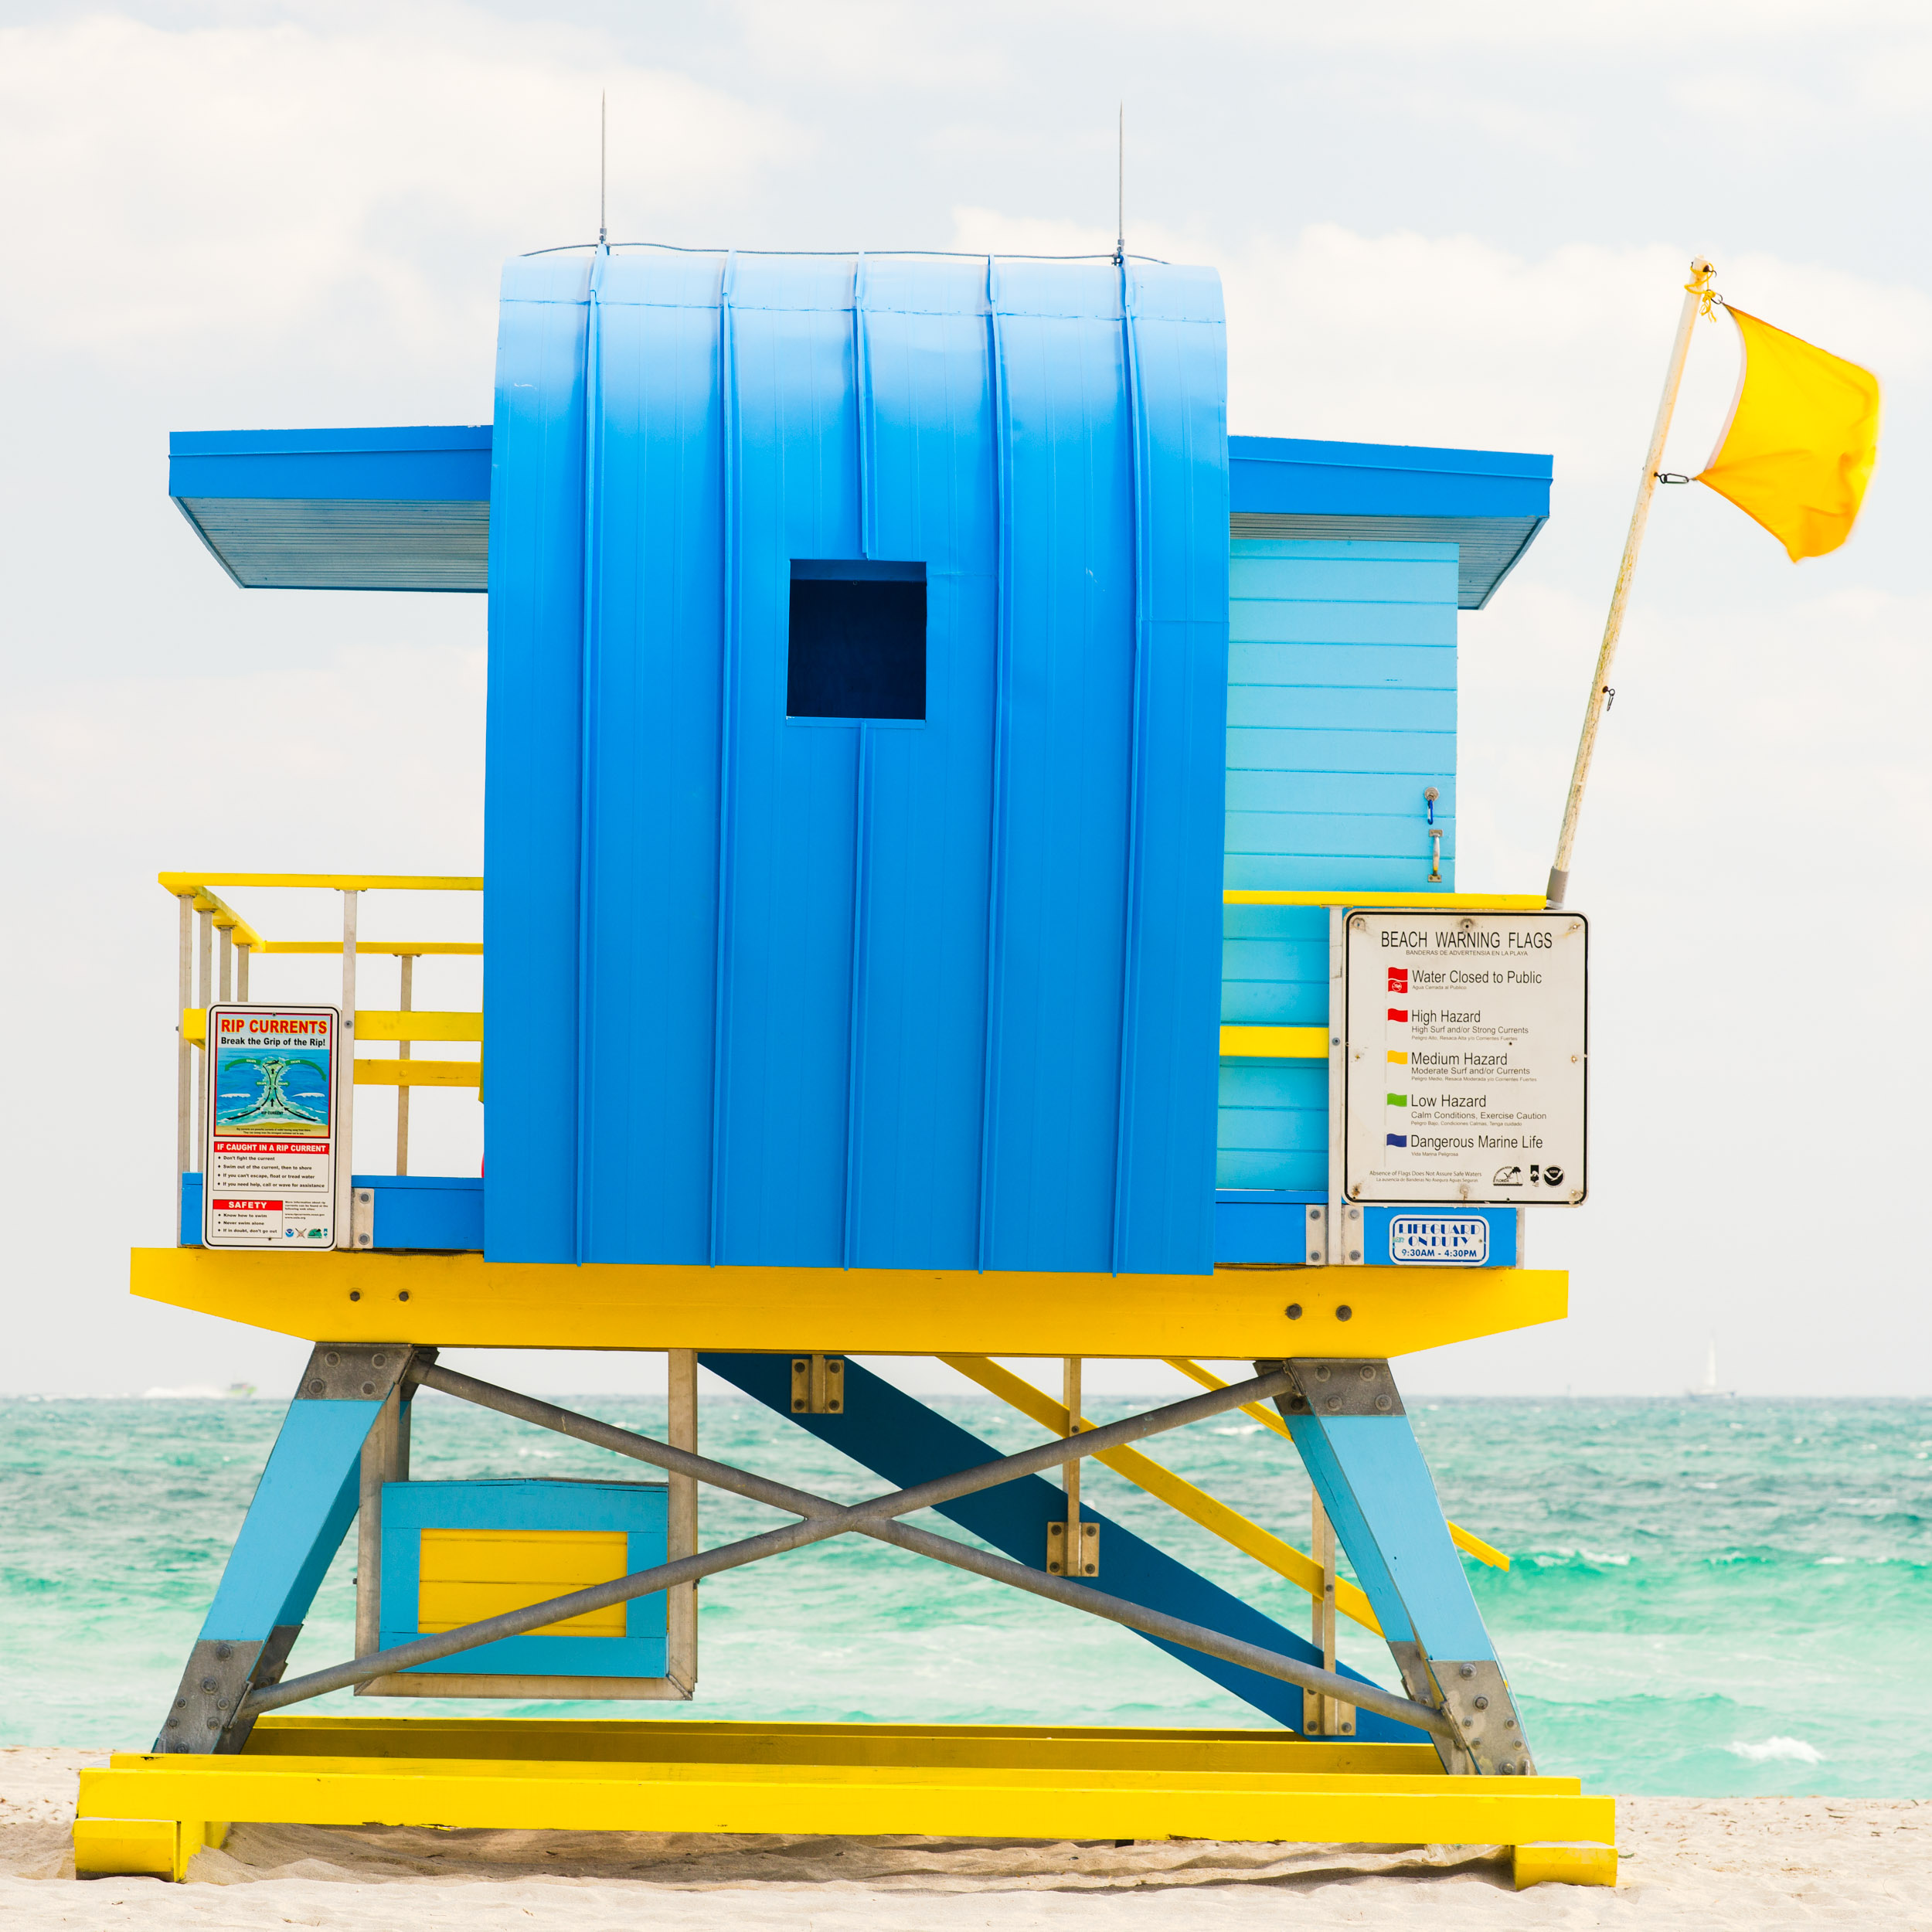 South Pointe Miami Lifeguard Stand - Rear View